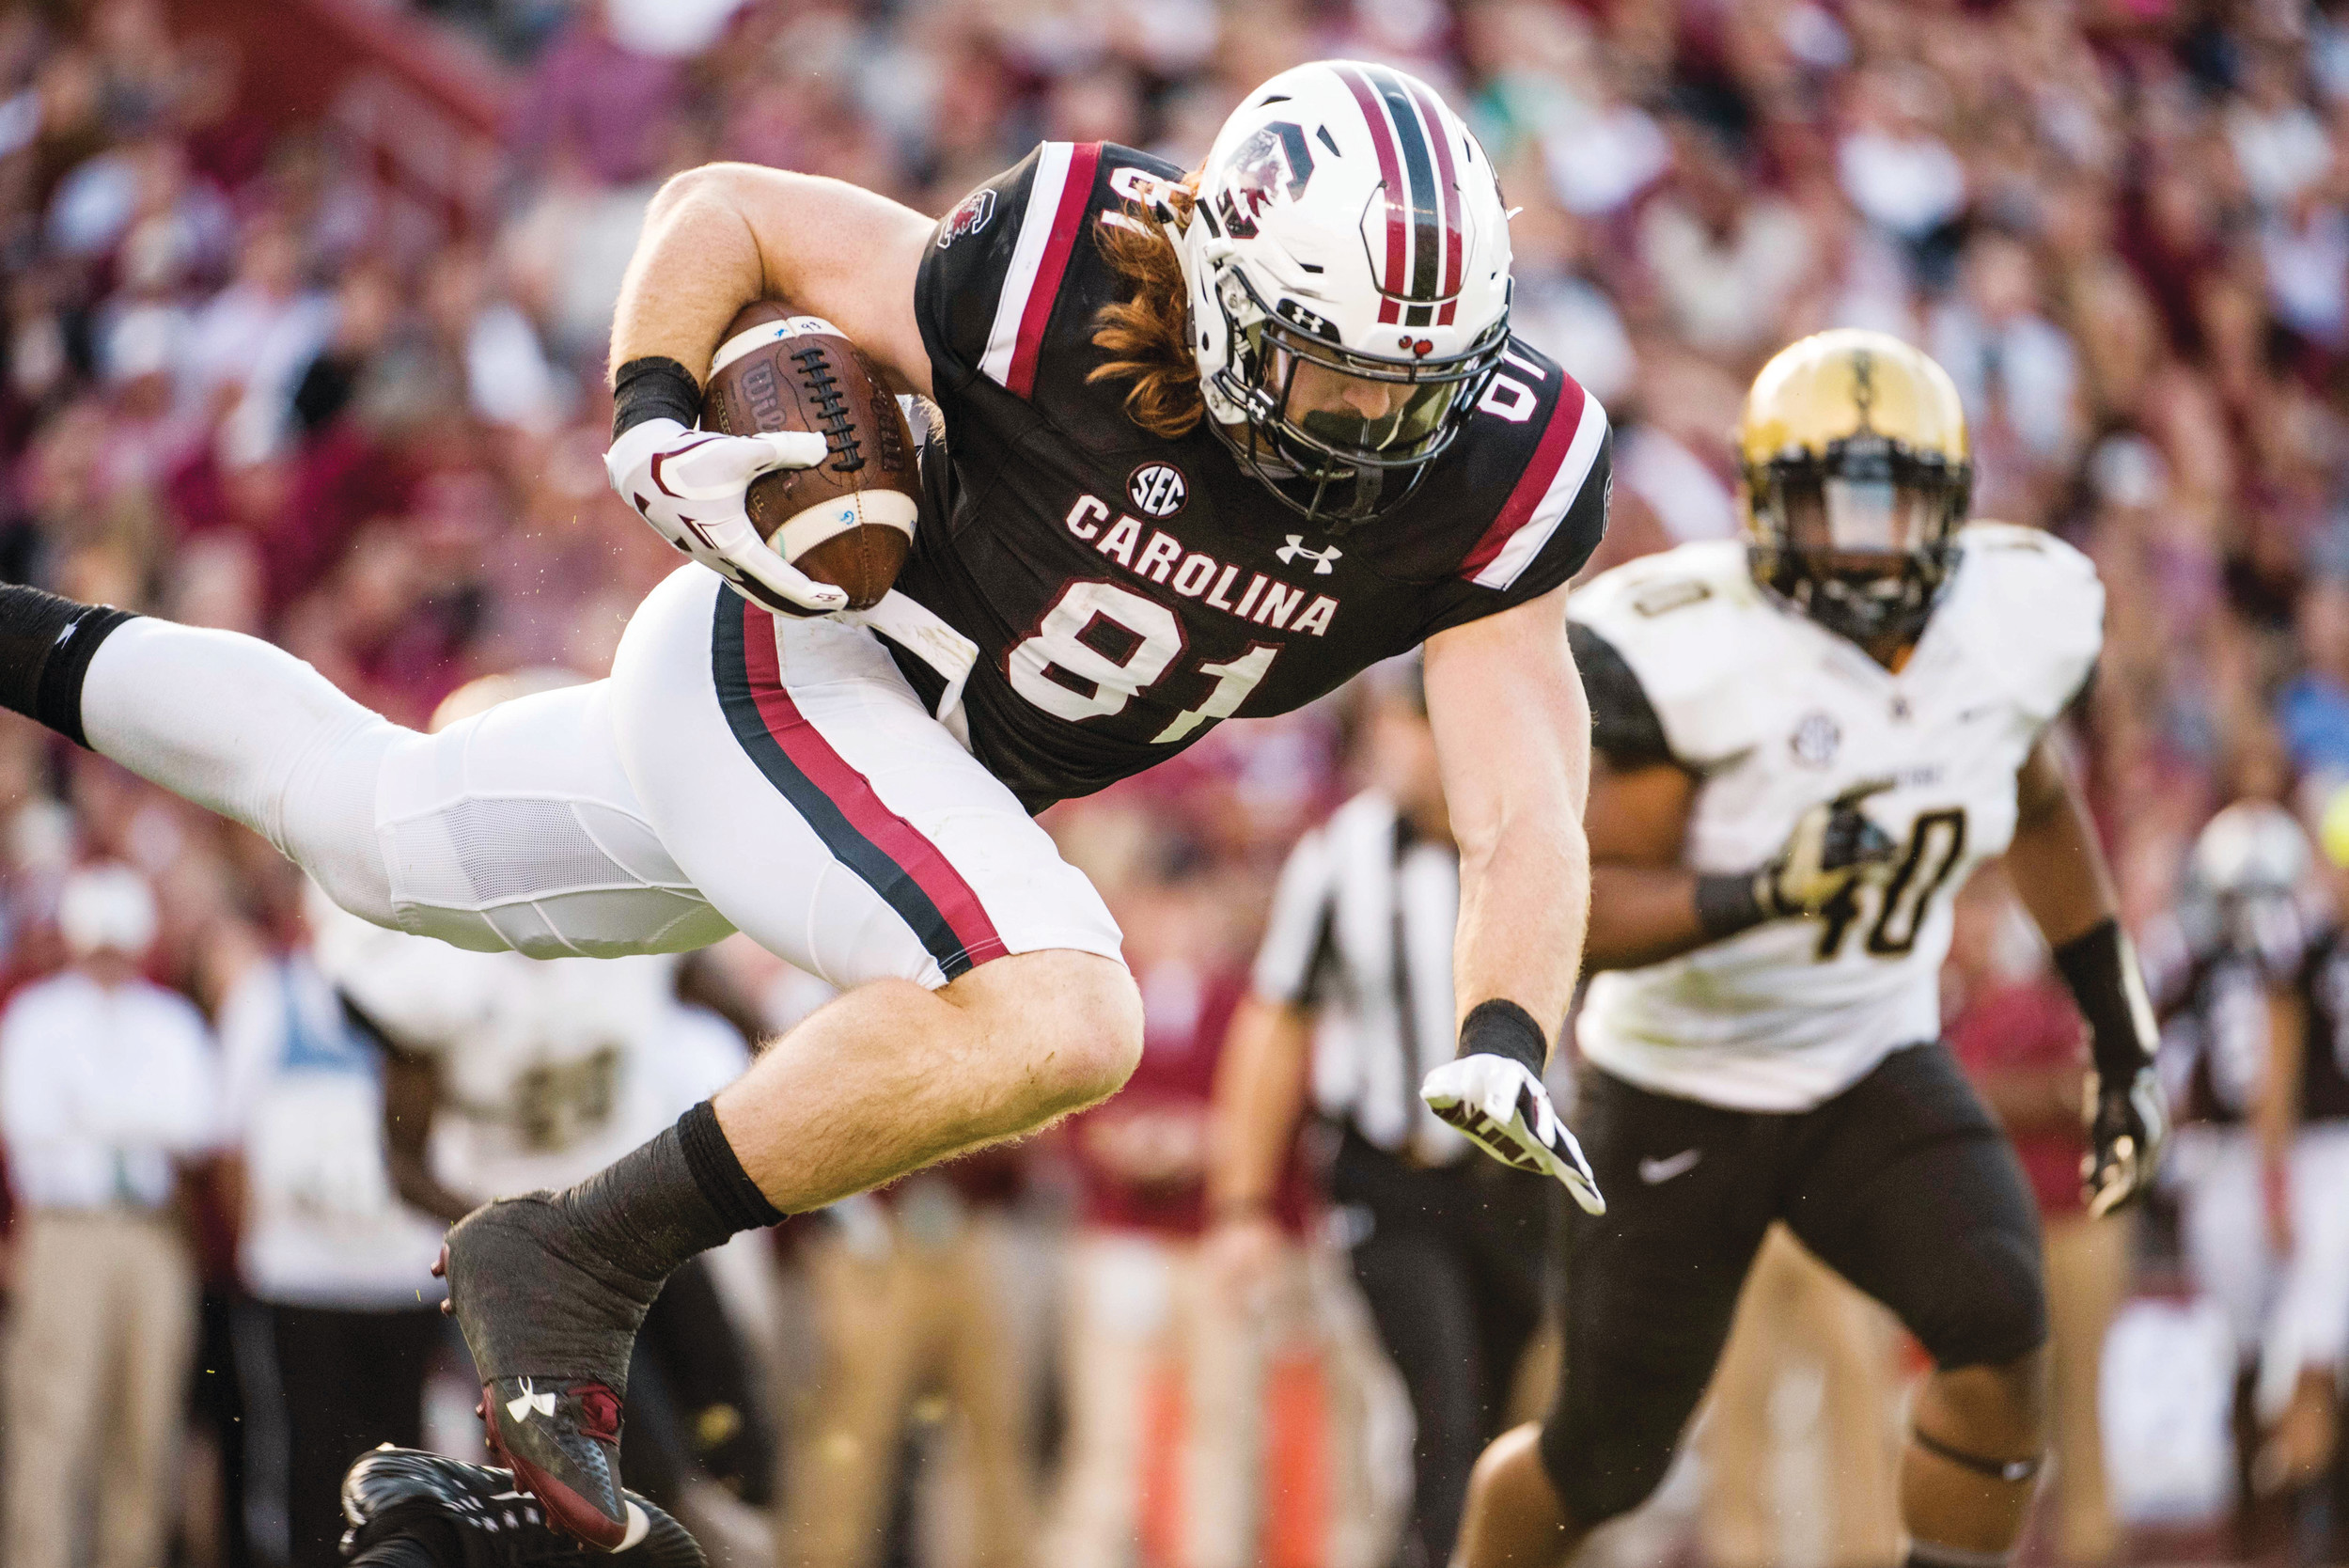 THE ASSOCIATED PRESS  South Carolina tight end Hayden Hurst (81) is upended by the Vanderbilt defense during the first half of an NCAA college football game Saturday, Oct. 28, 2017, in Columbia, S.C. (AP Photo/Sean Rayford)